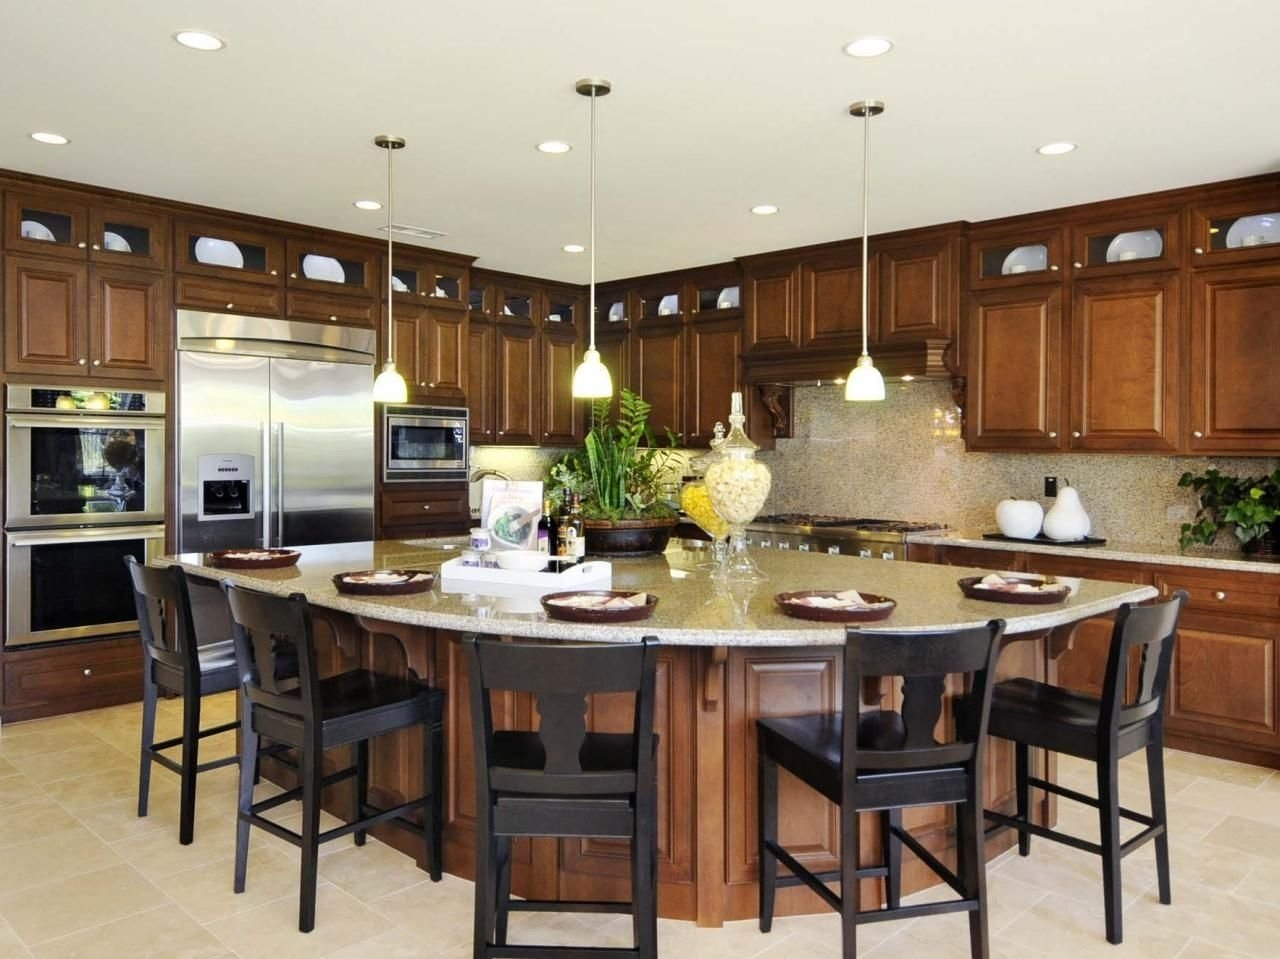 10 Fashionable Kitchen Layout Ideas With Island kitchen island design ideas pictures options tips island 2021